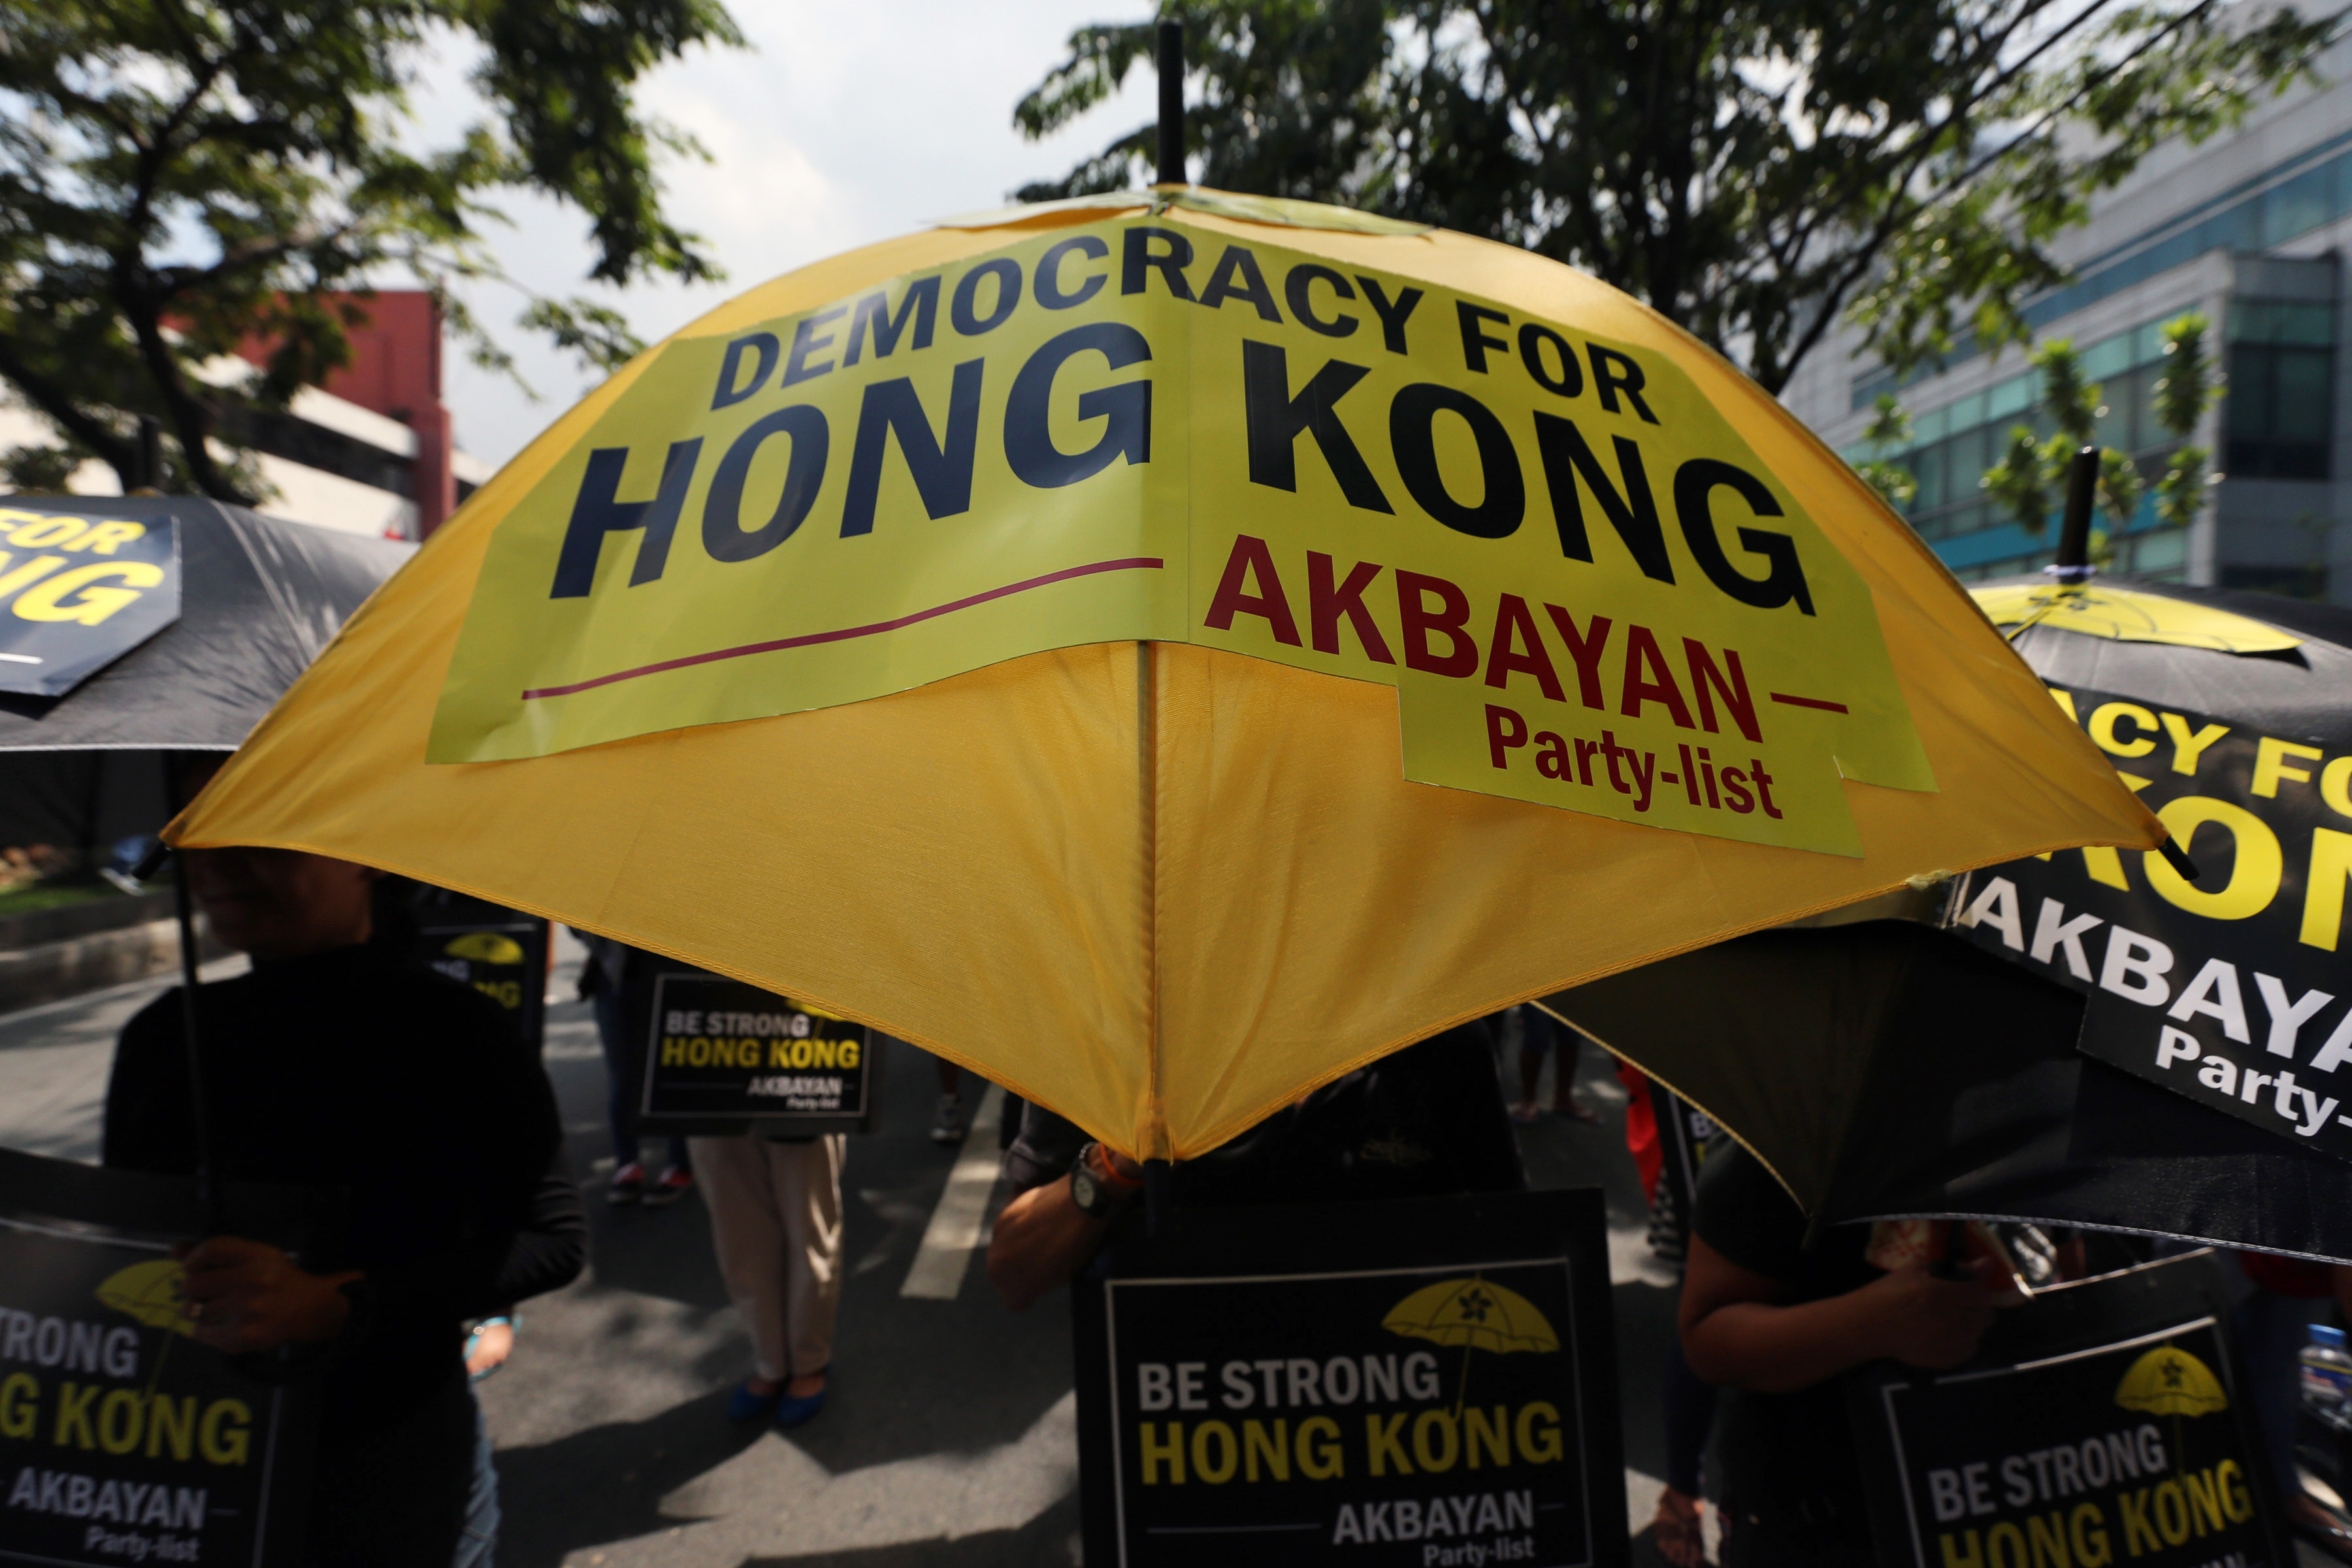 Filipinos holding umbrellas stage a demonstration to express their solidarity with Hong Kong's pro-democracy protesters in front of the Chinese Consulate in Makati city, south of Manila, Philippines, 02 October 2014. Photo credit: EPA/FRANCIS R. MALASIG